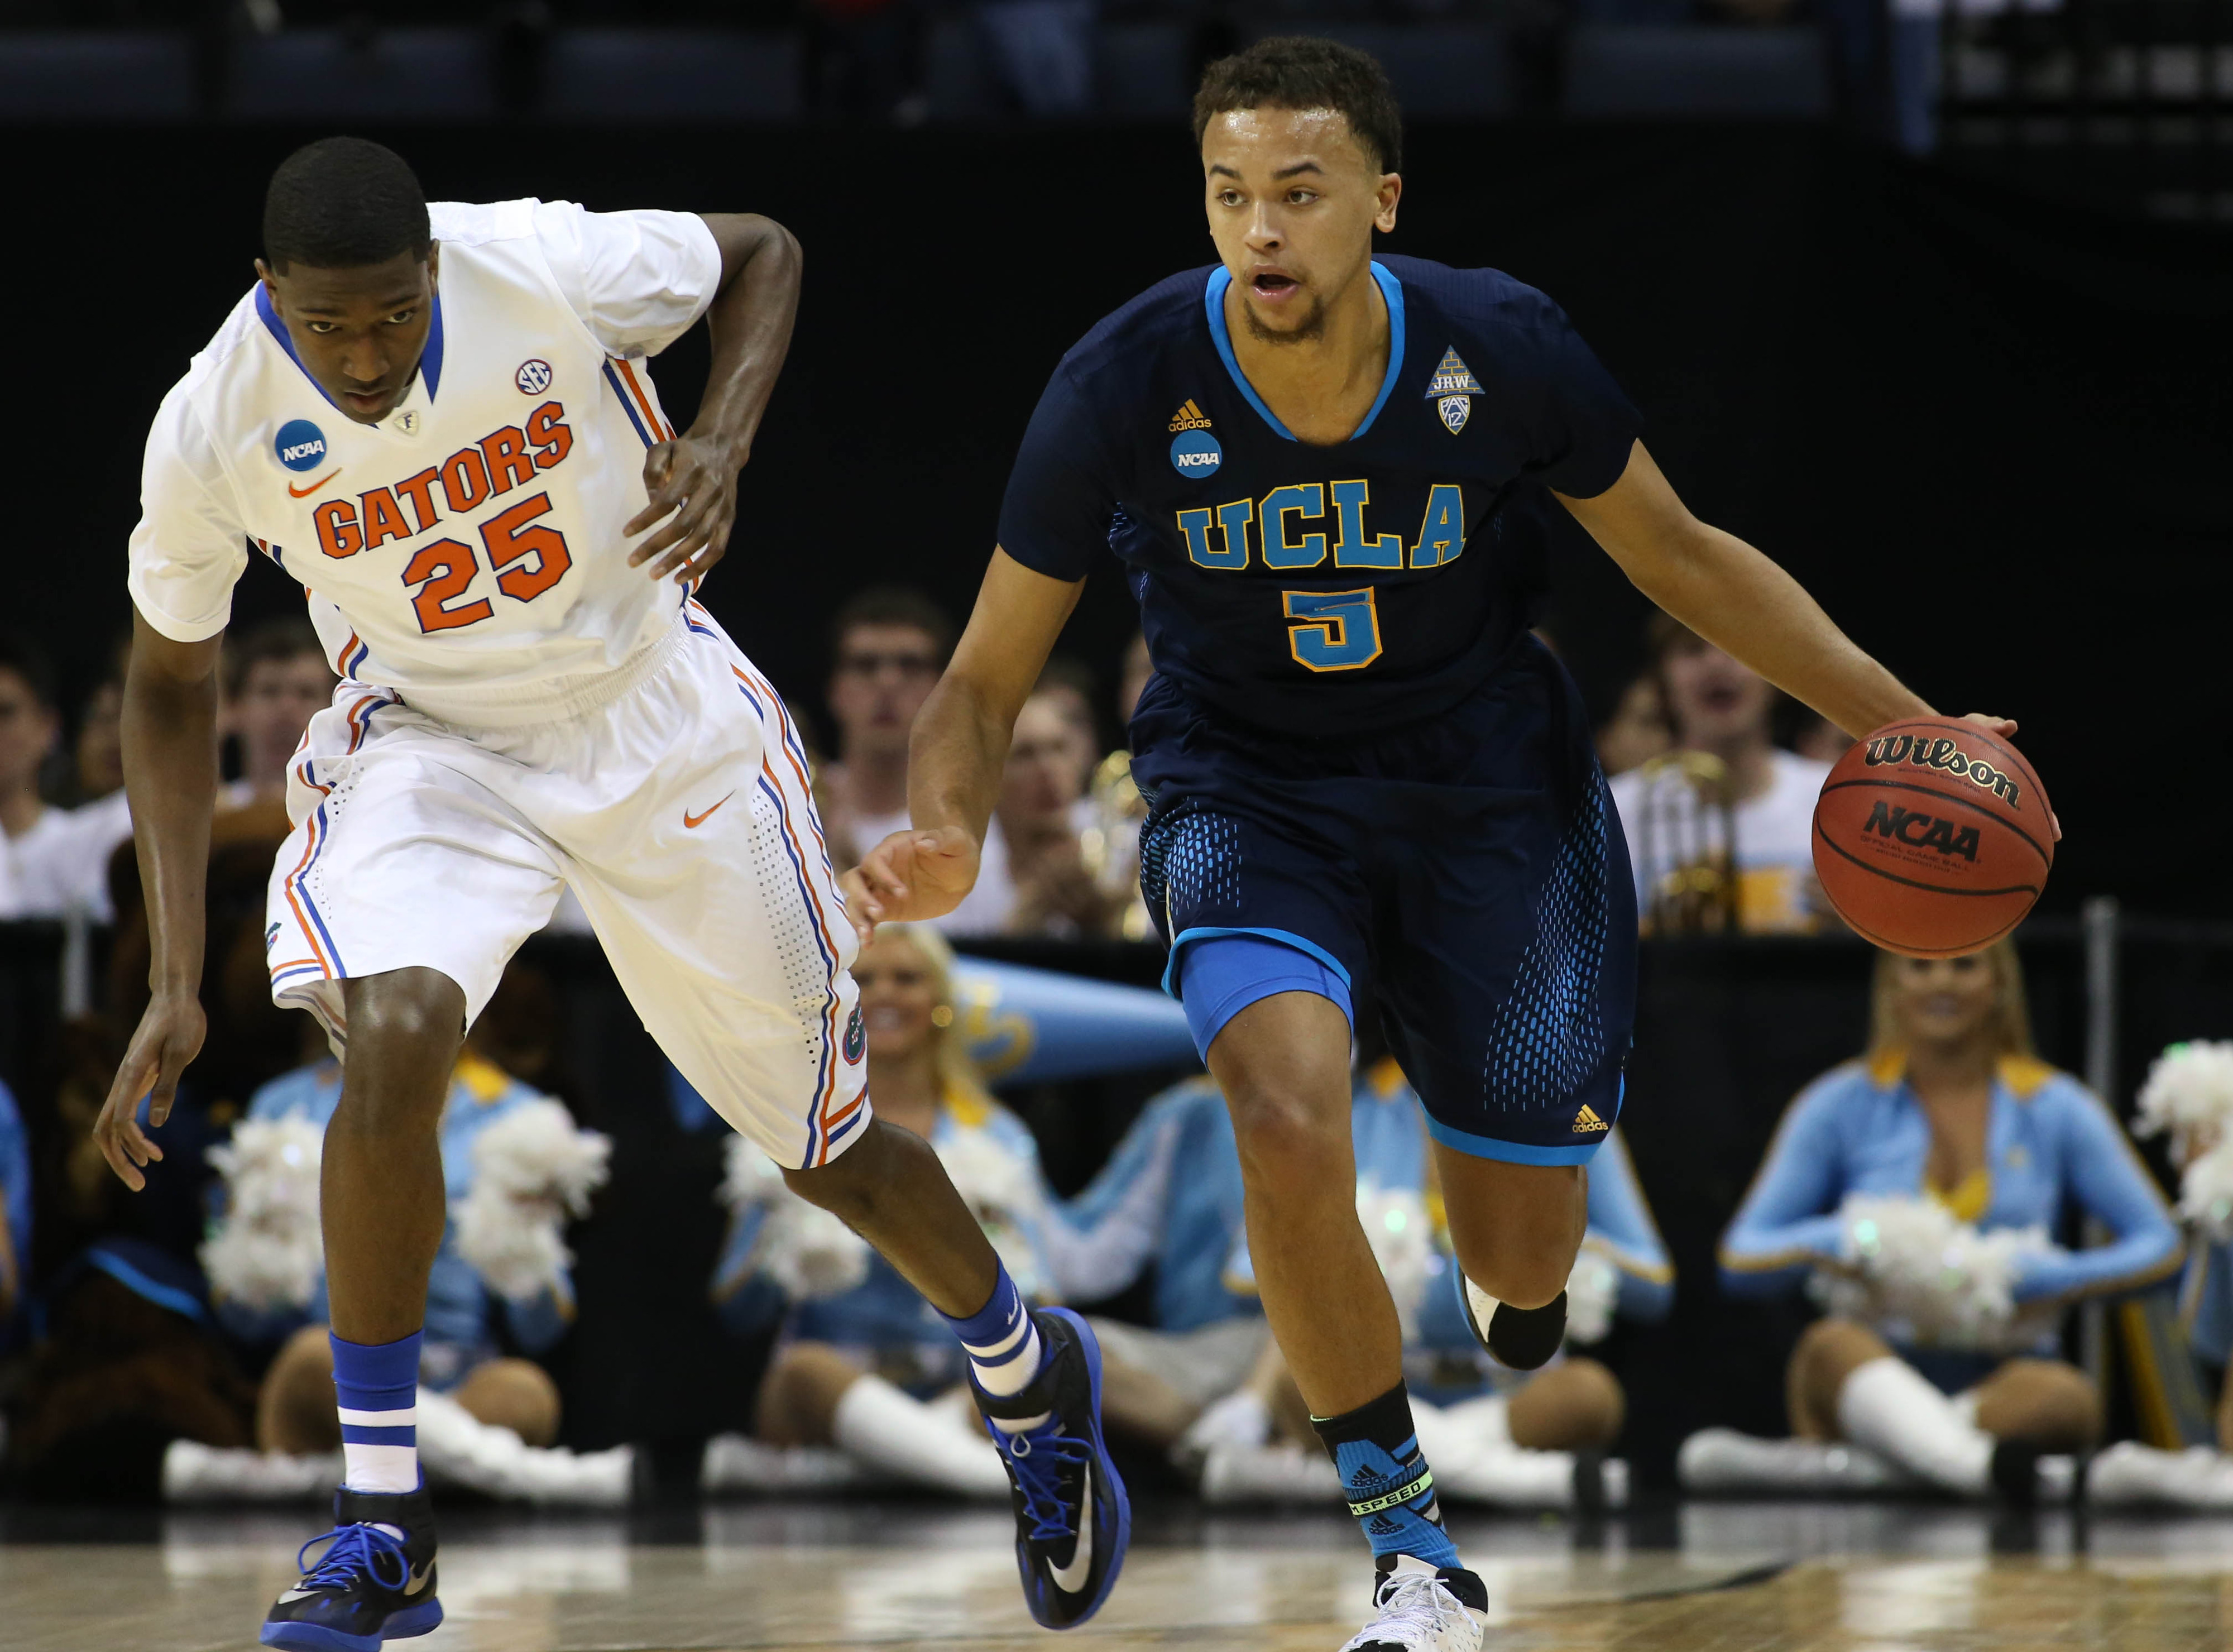 UCLA star Kyle Anderson to declare for NBA Draft, per report